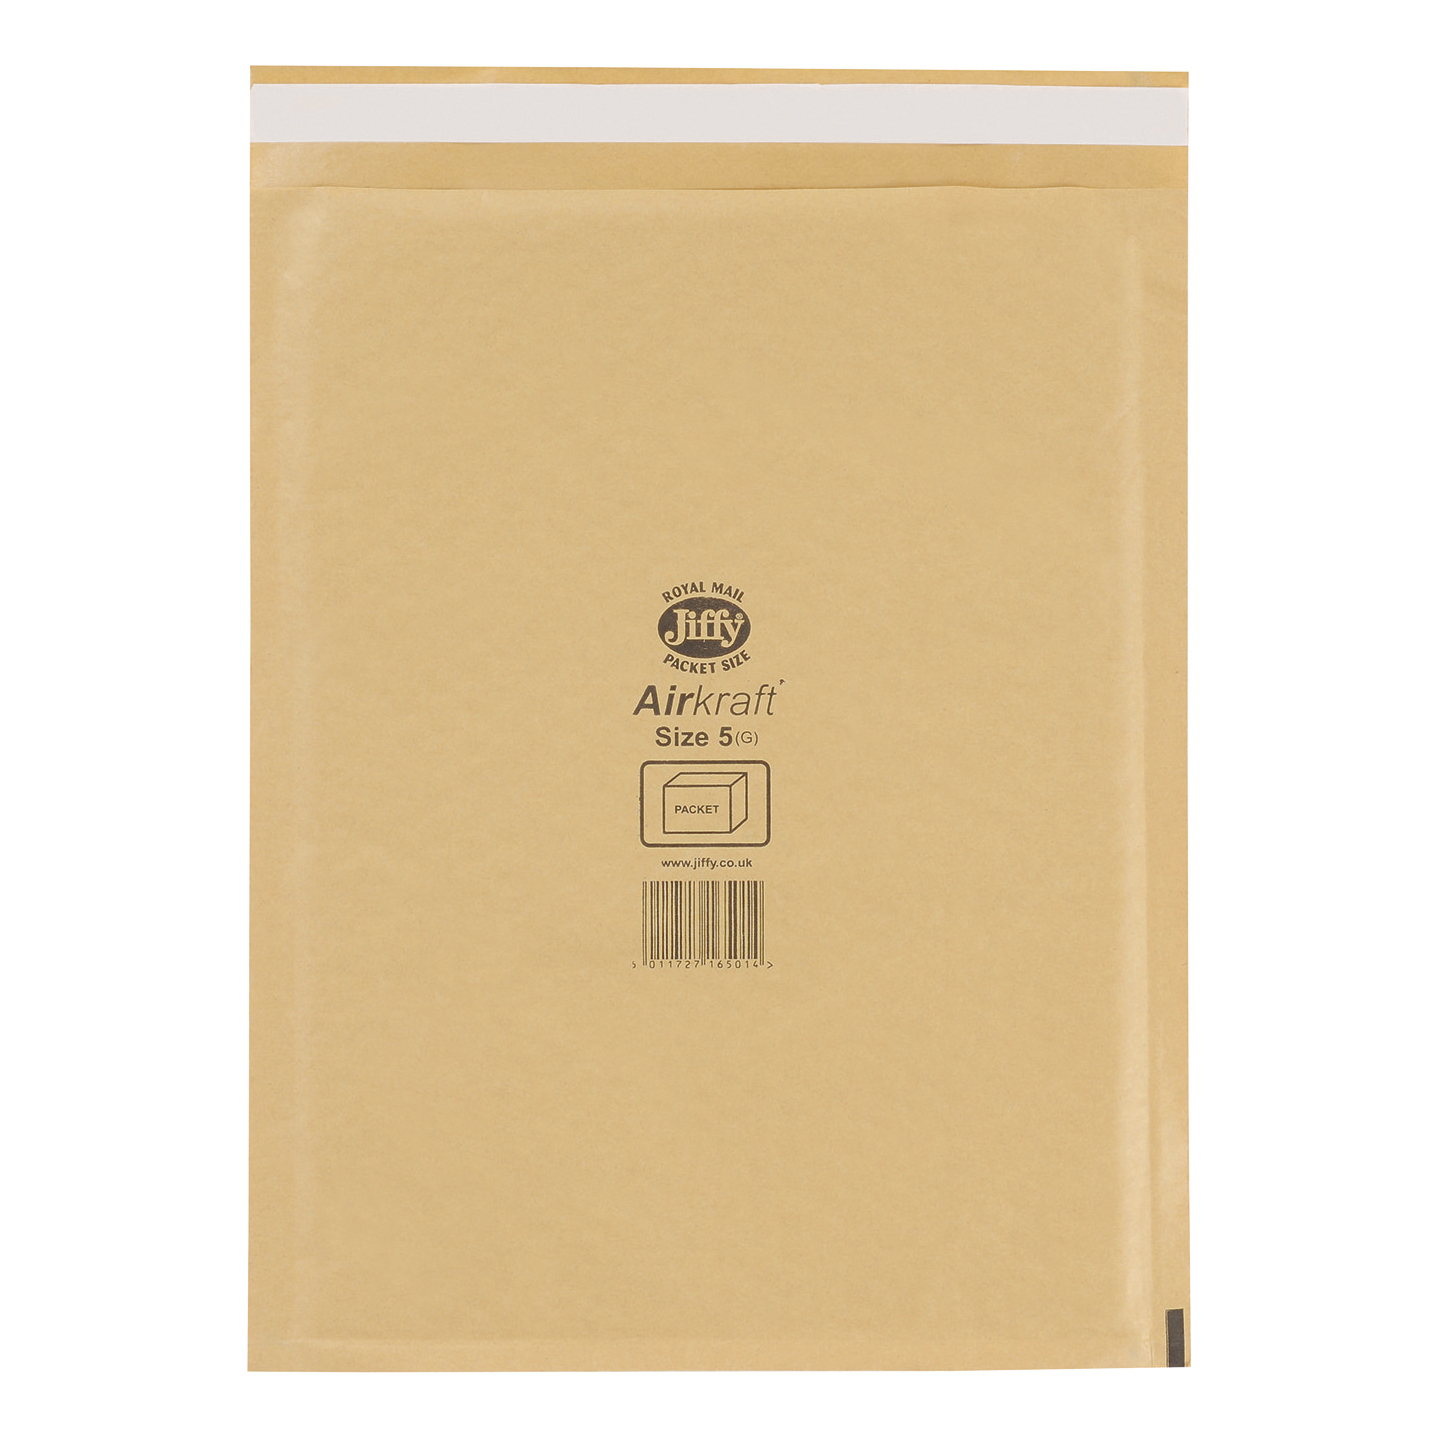 Jiffy Airkraft Bubble Bag Envelopes Size 5 Gold 260x345mm Ref JL-GO-5 Pack 50